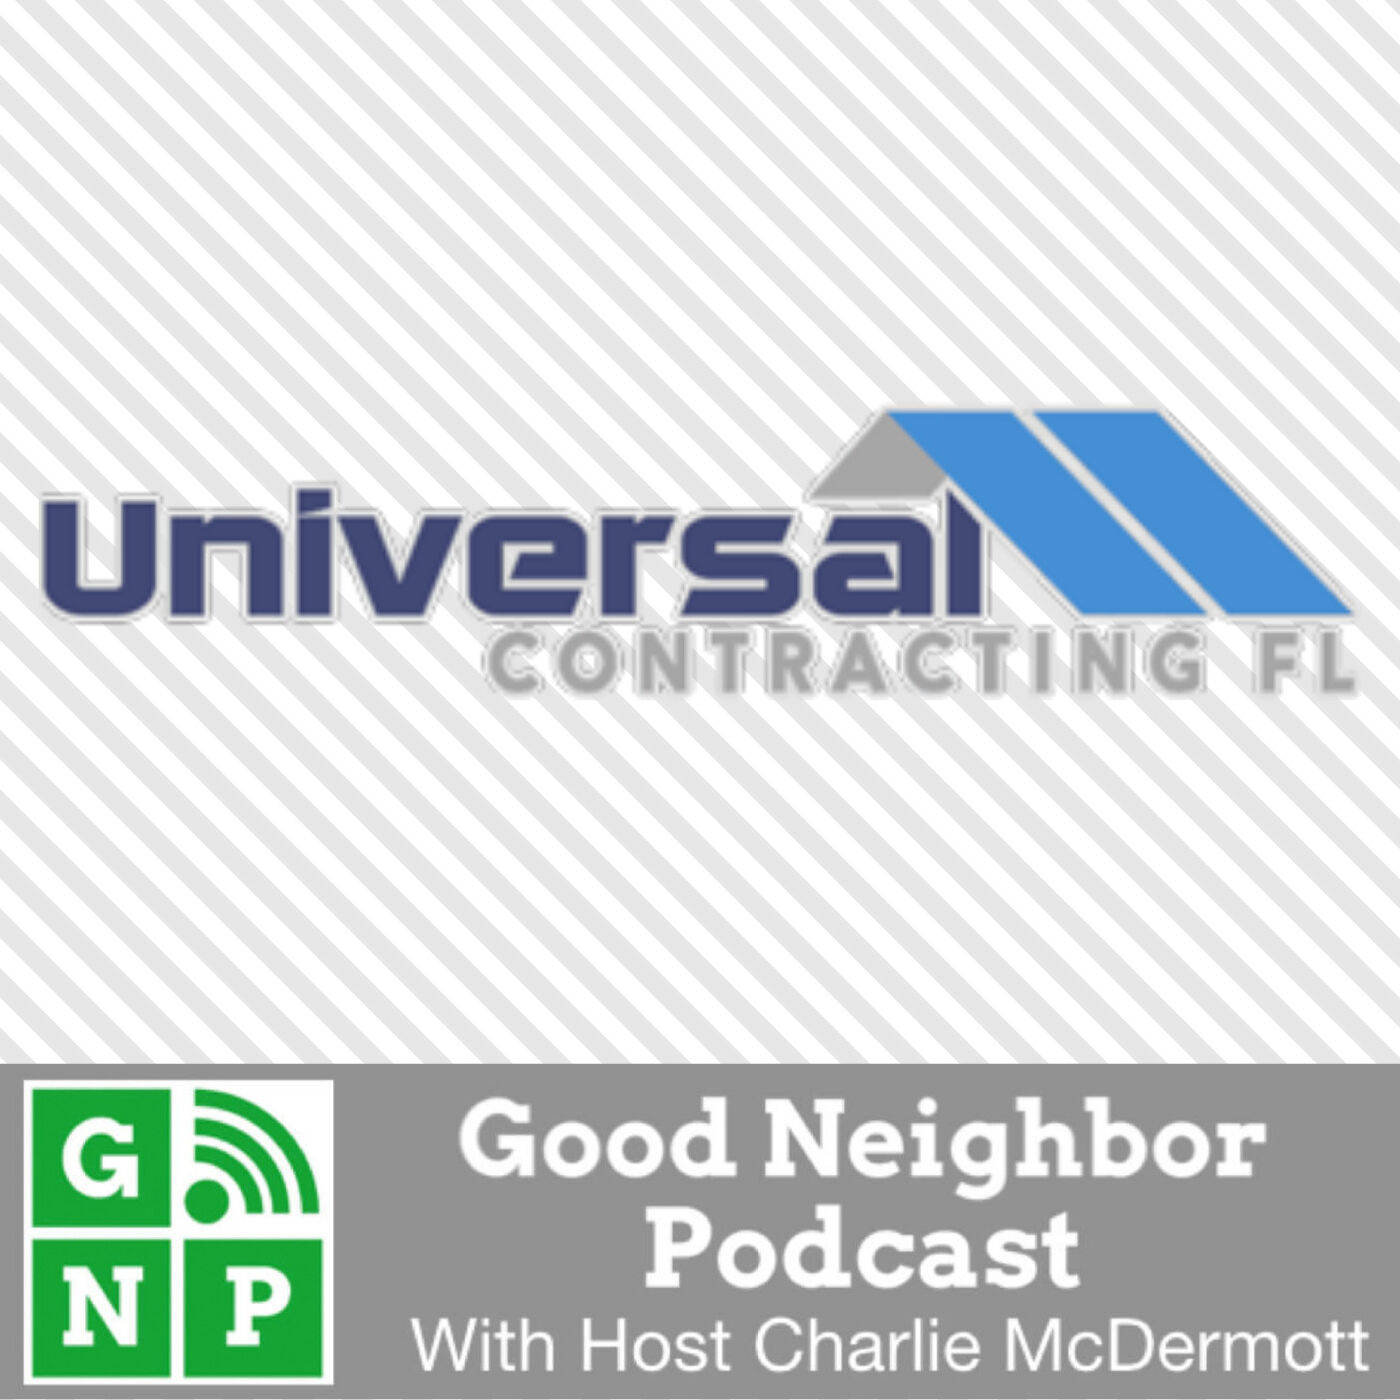 EP #533: Universal Contracting of Florida with Connery Schiebel